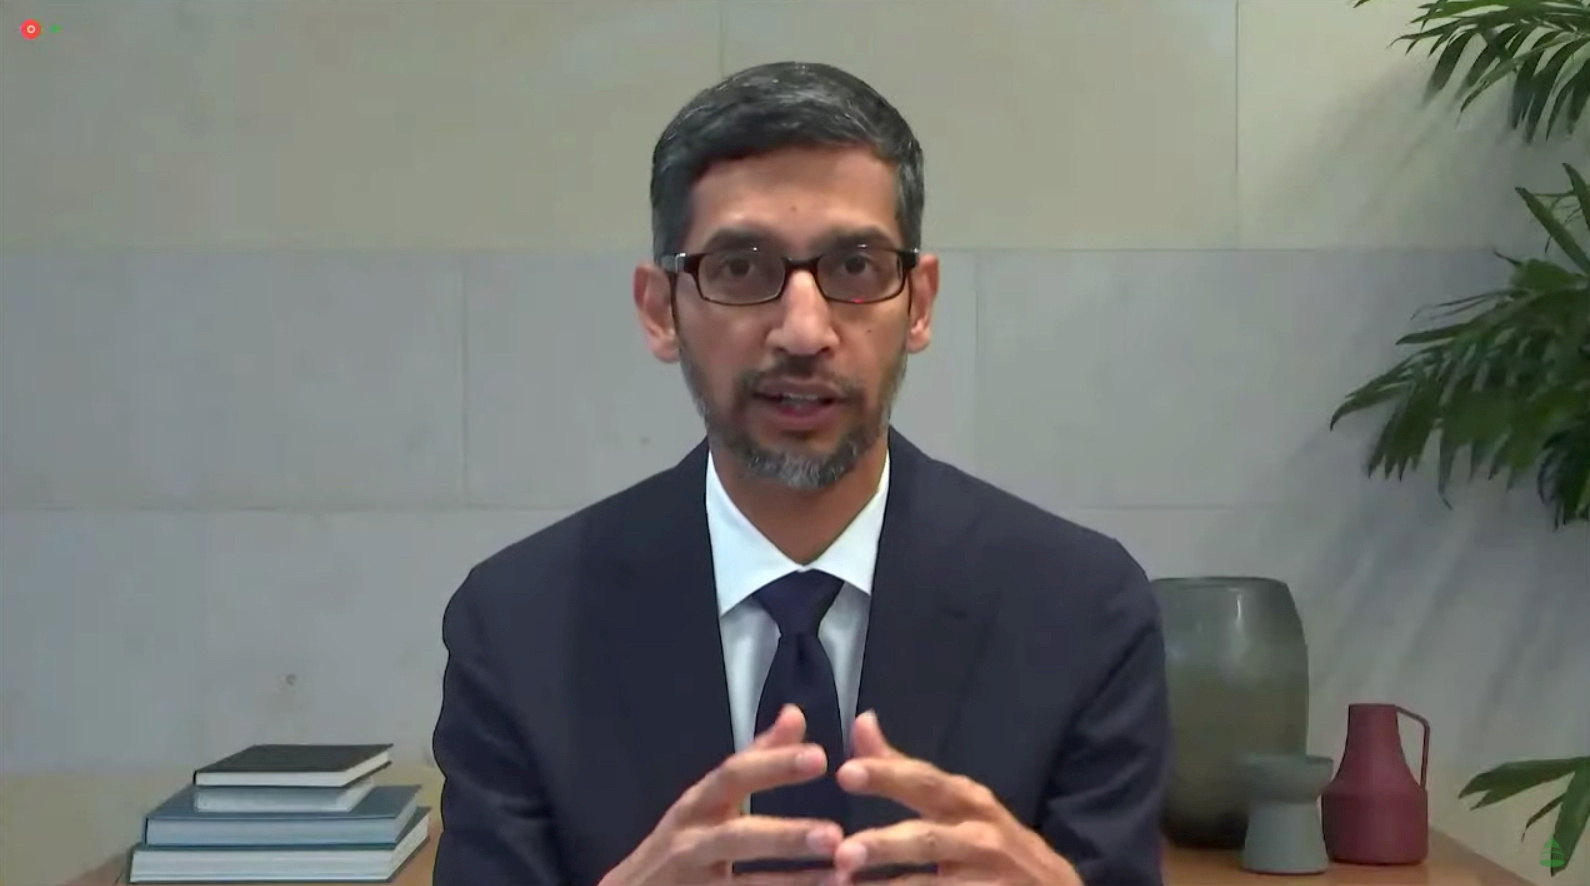 Google CEO Sundar Pichai testifies during a remote video hearing held by subcommittees of the U.S. House of Representatives Energy and Commerce Committee on